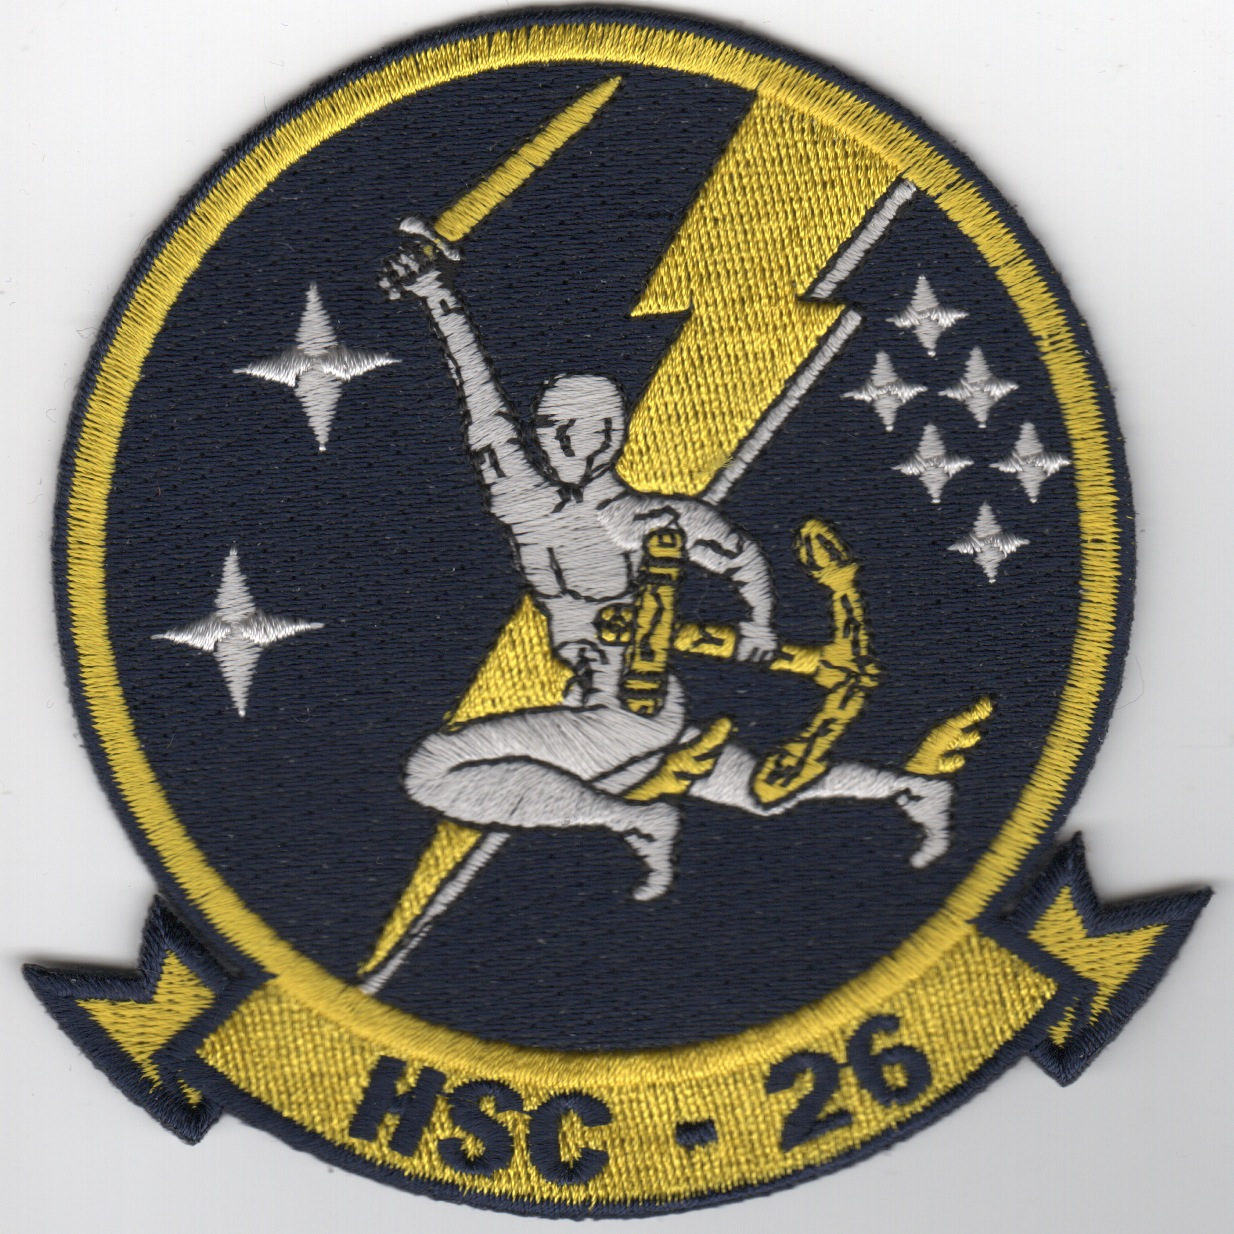 HSC-26 Squadron Patch (Blue/Man)